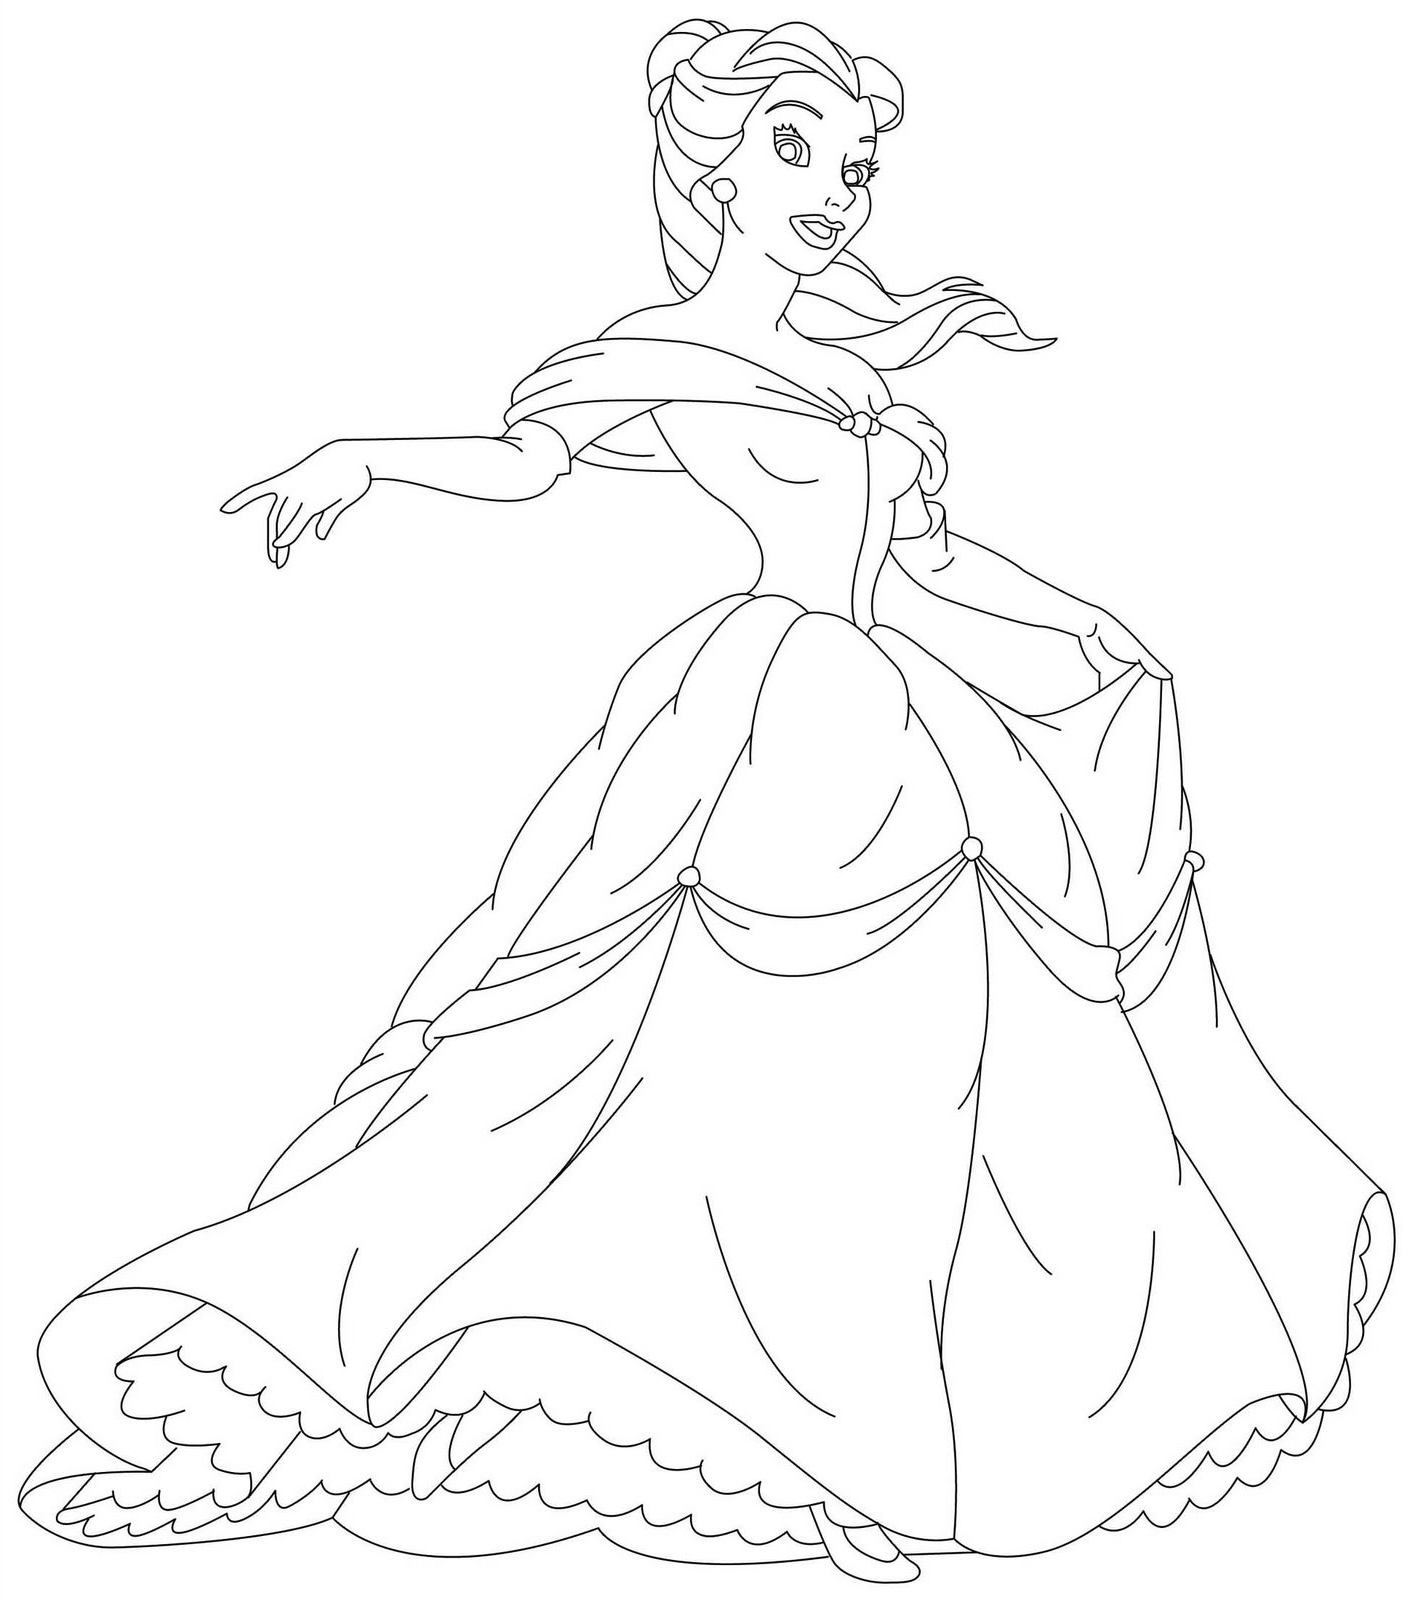 Free Printable Disney Princess Coloring Pages For Kids Disney Princesses Coloring Pages Free Coloring Sheets